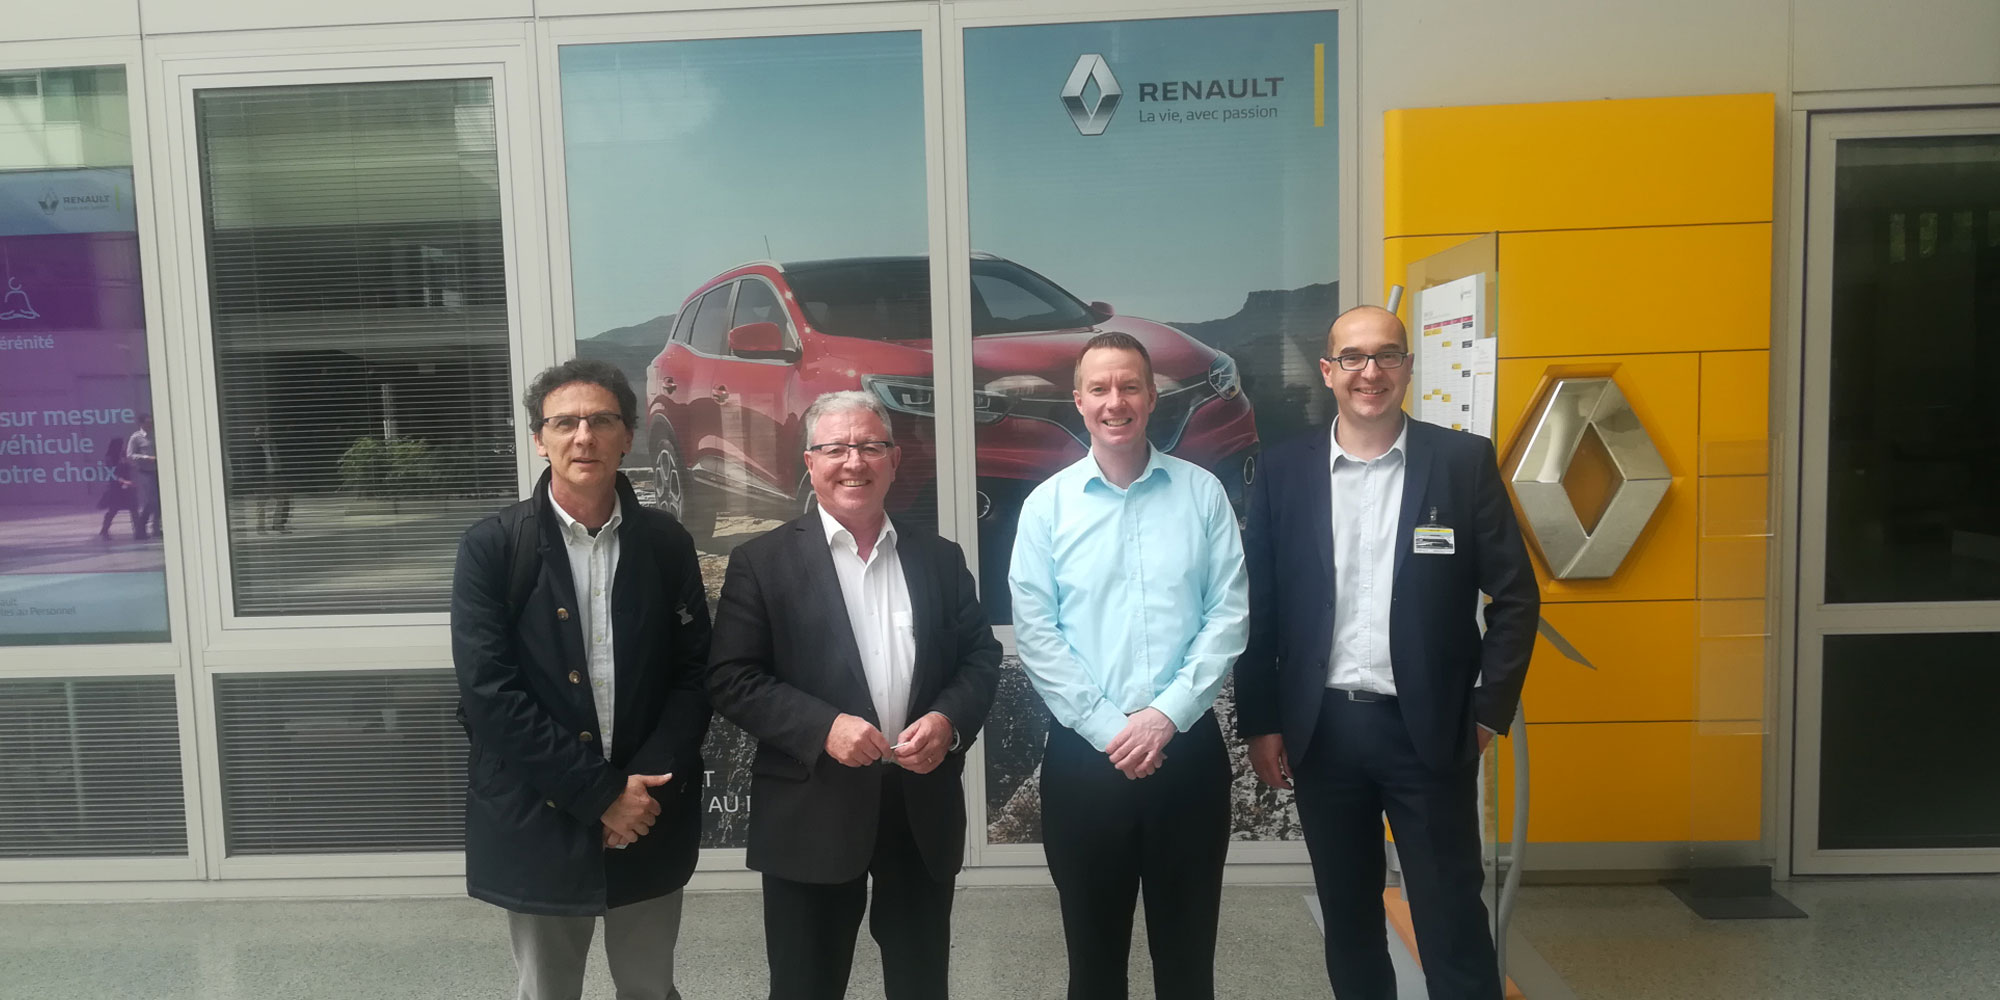 Symposium with Renault